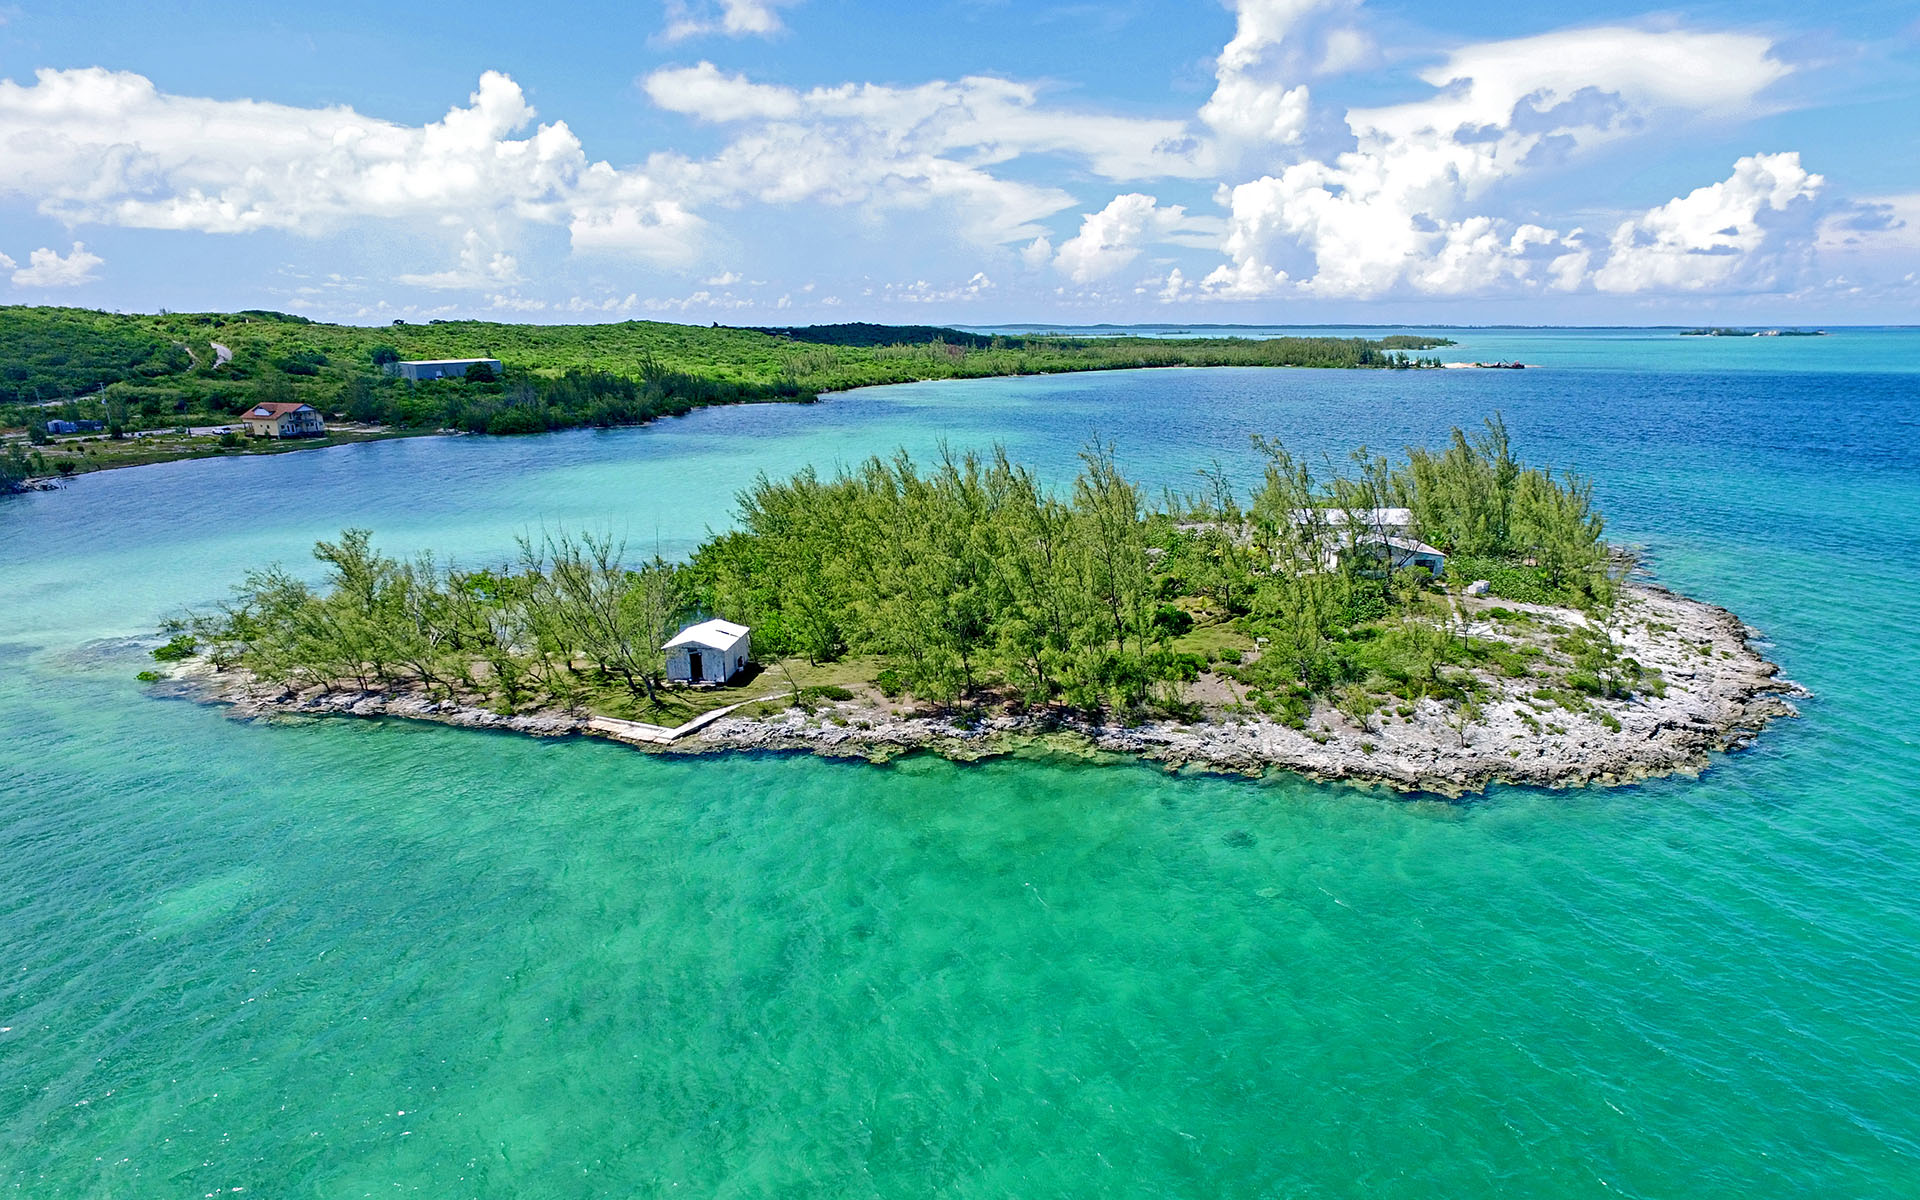 Private Island for Sale at Third Cay Private Island, near Harbour Island - MLS 29474 Harbour Island, Eleuthera, Bahamas